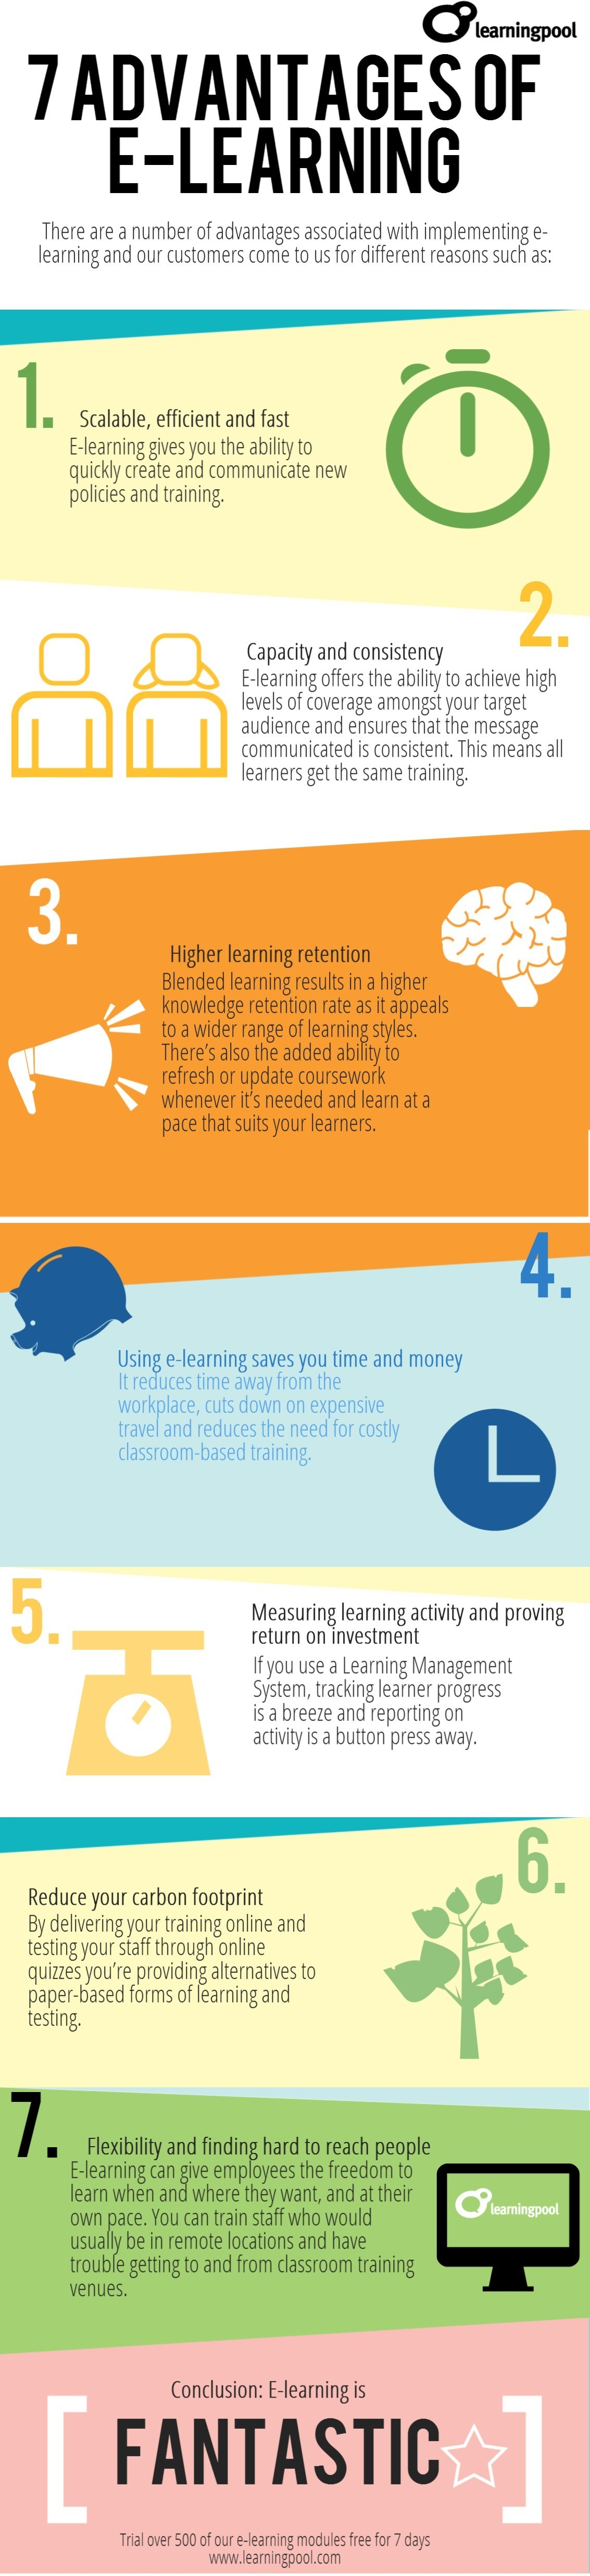 Top 7 e-Learning Advantages Infographic